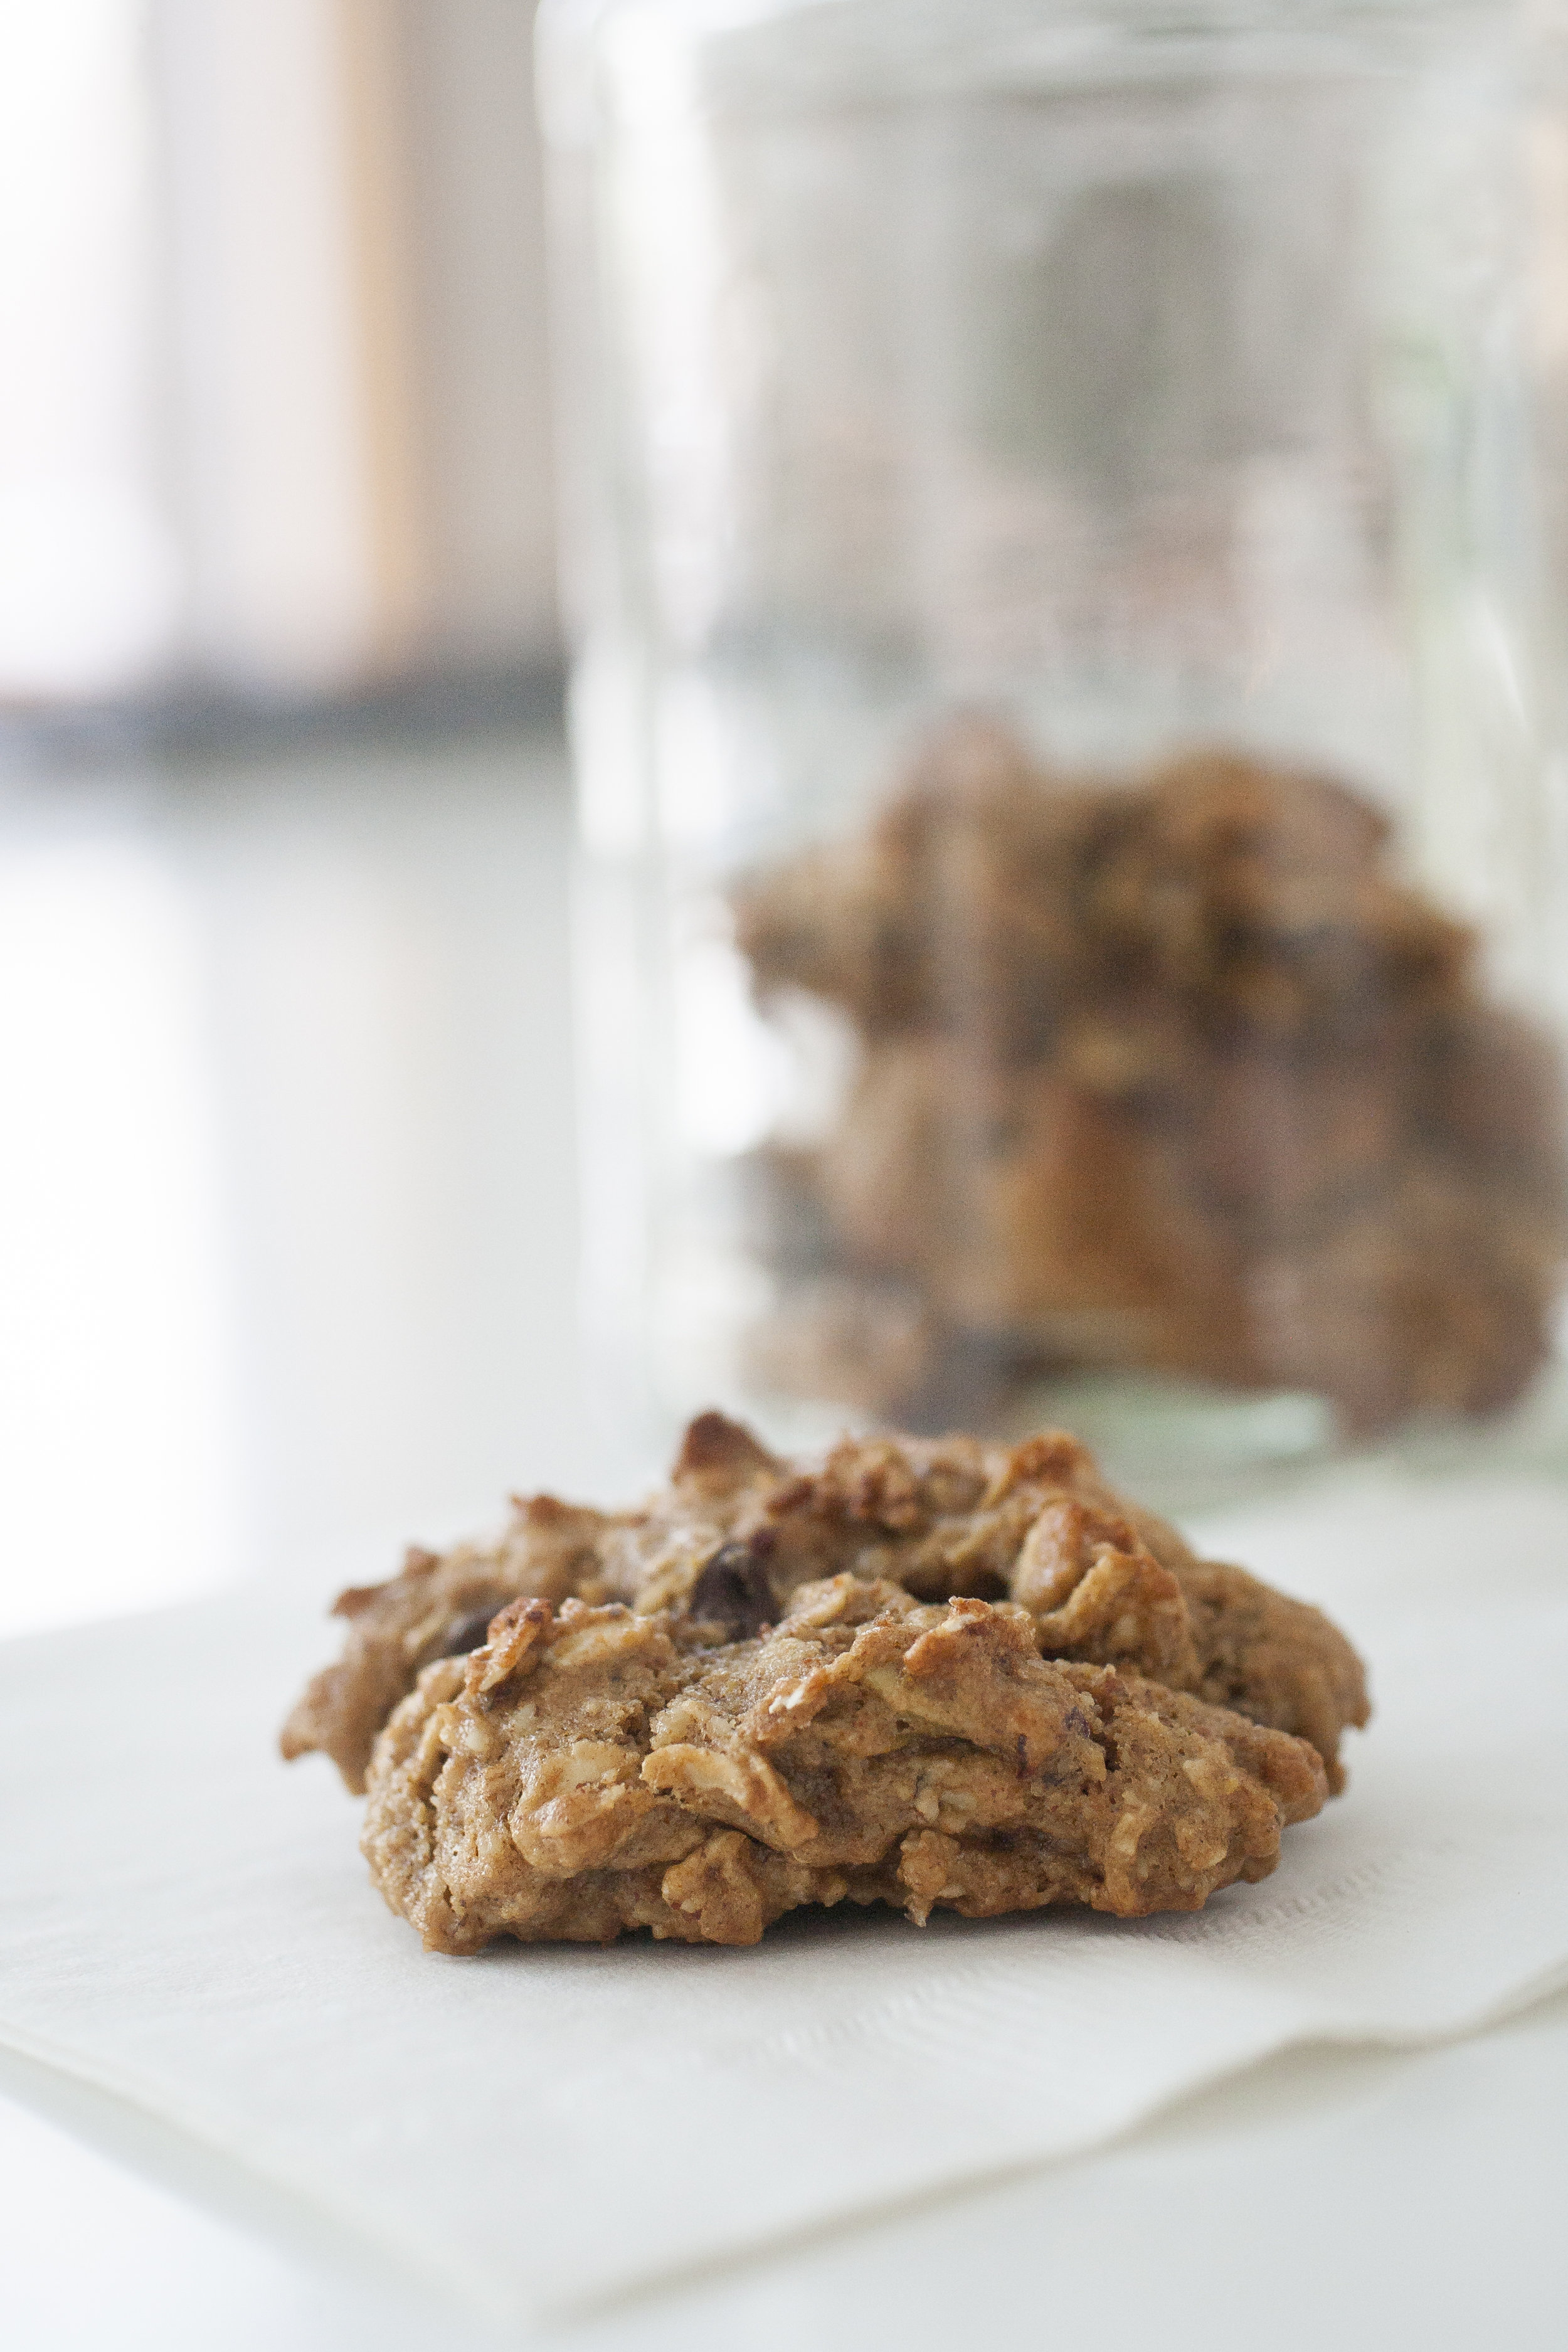 Produce On Parade - Easy Breakfast Cookies - These are my go-to breakfast cookies! They are healthy enough to munch on a couple for breakfast, but  tasty enough for dessert too. Nobody wants to eat cardboard cookies, no matter how healthy! These are made mostly with nuts, oats, and flaxseed, and are sweetened with agave nectar, banana, and a touch of brown sugar. Each cookie is studded with dried cranberries, chocolate chips, and pumpkin seeds for a nutritious and scrumptious bite!